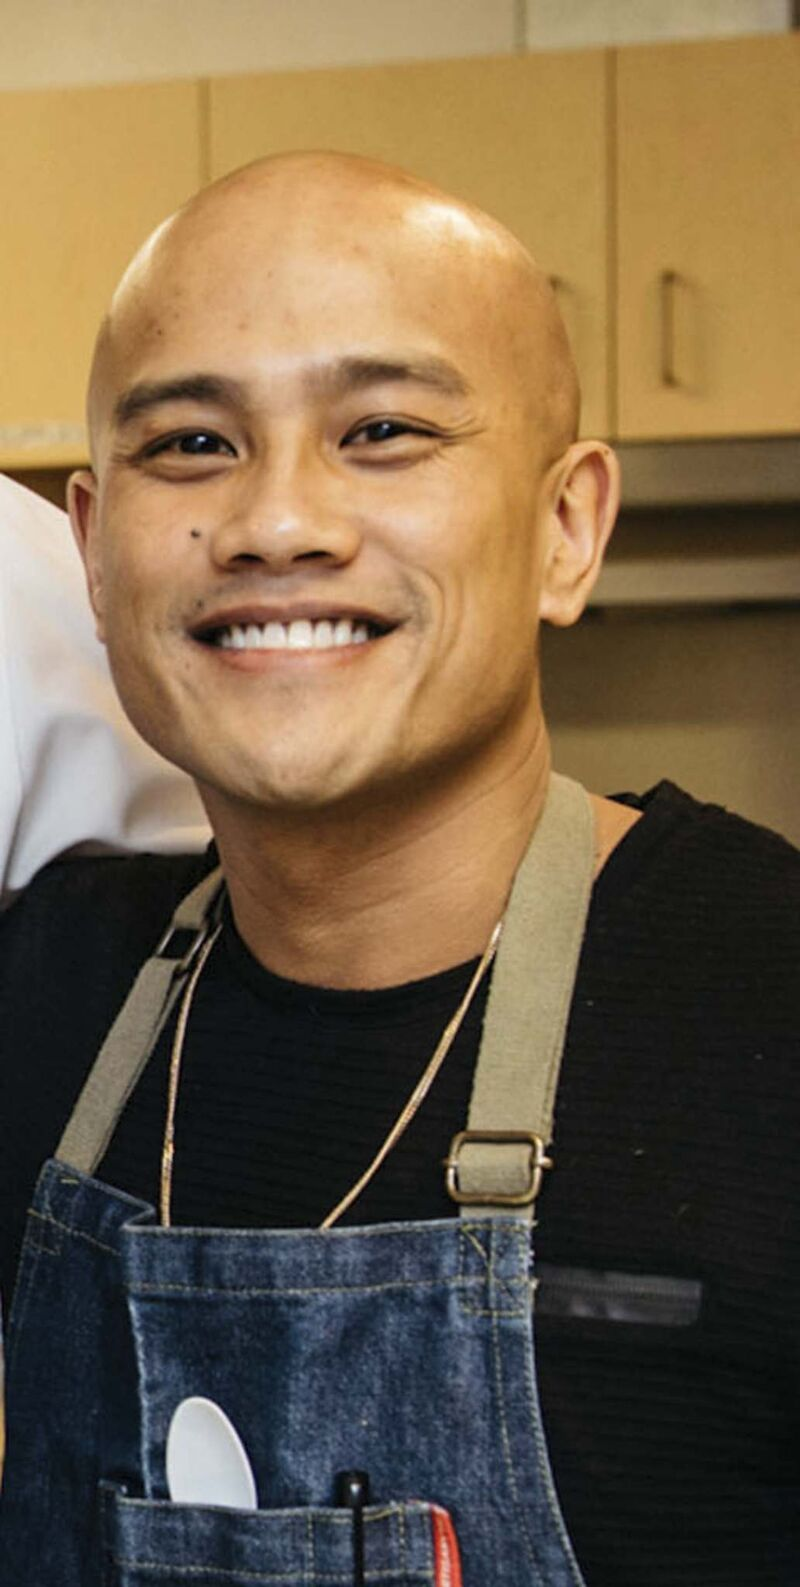 Chef Jeremy Senaris is seeking $75,000 for breach of contract. (Red Photo Co. files)